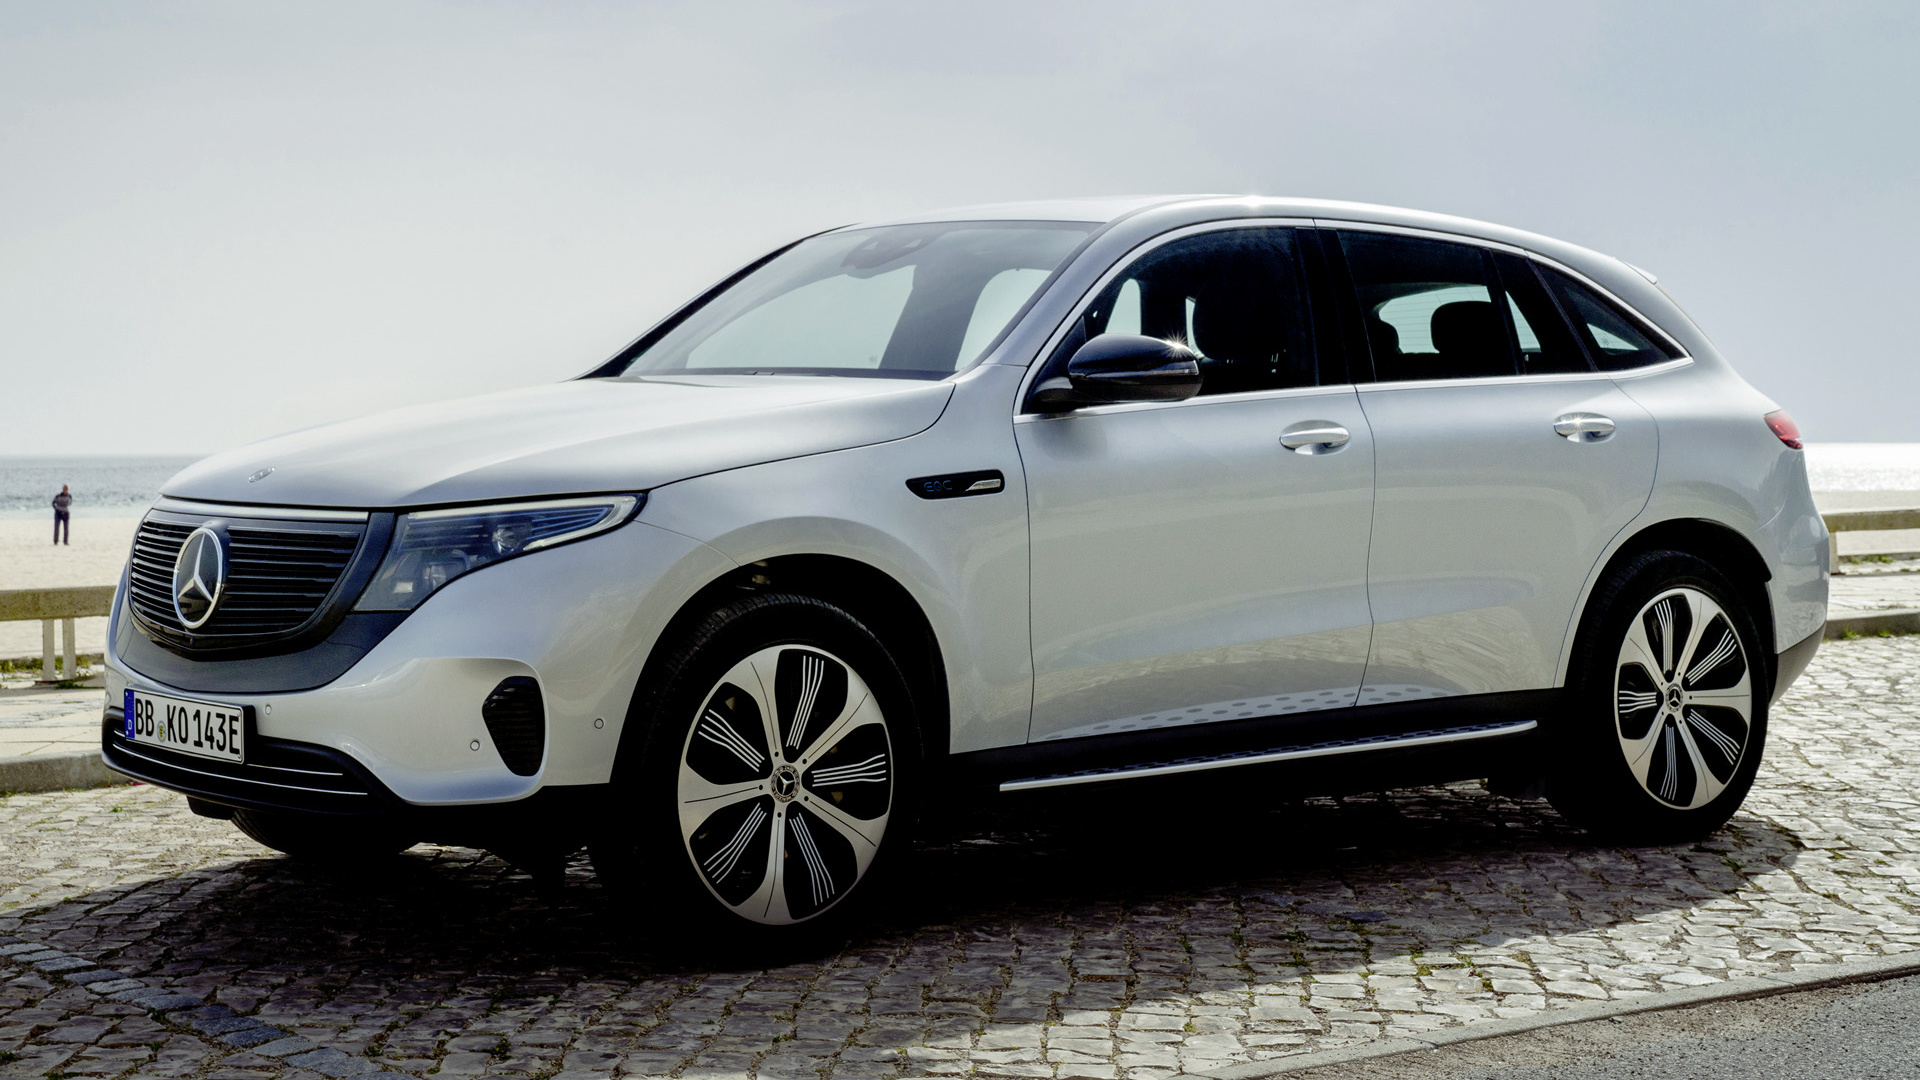 2019 Mercedes Benz EQC Edition 1886   Wallpapers and HD Images 1920x1080